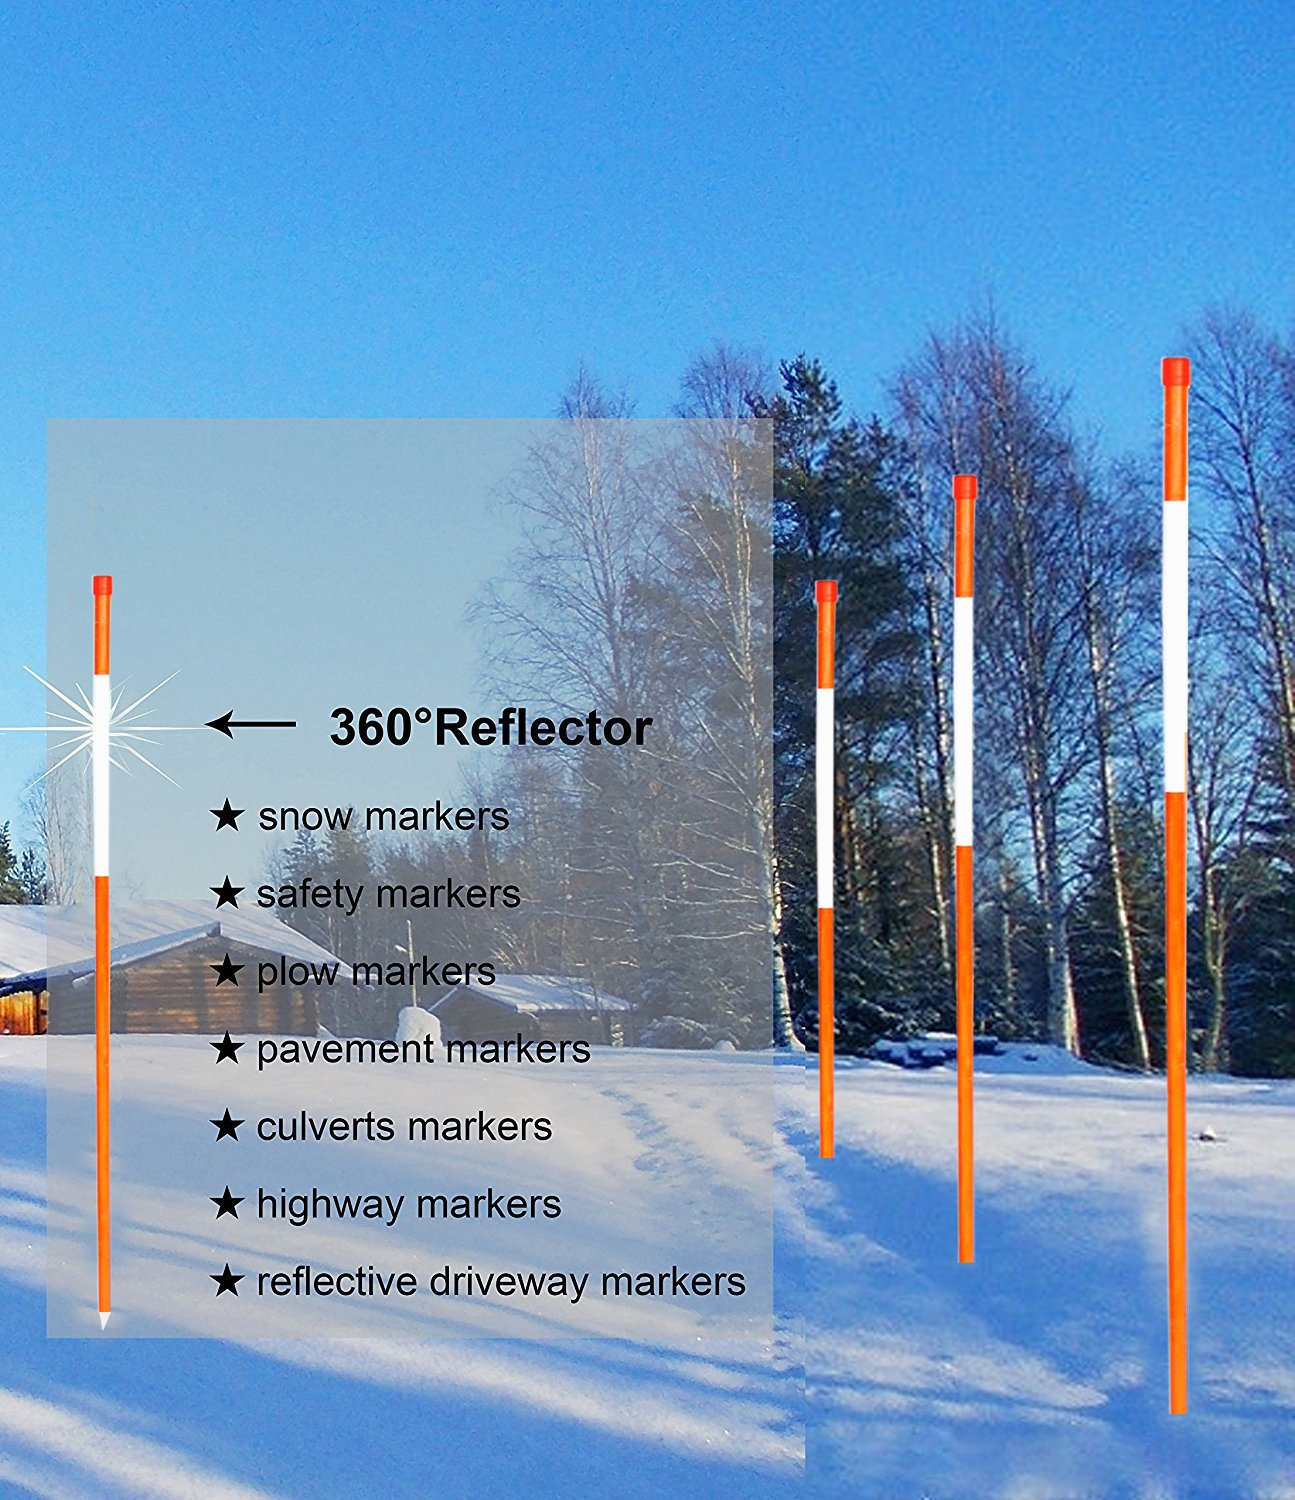 FiberMarker 60-Inch Reflective Driveway Markers Orange 20-Pack 5/16-Inch Dia Solid Driveway Poles for Easy Visibility at Night ... by FiberMarker (Image #2)